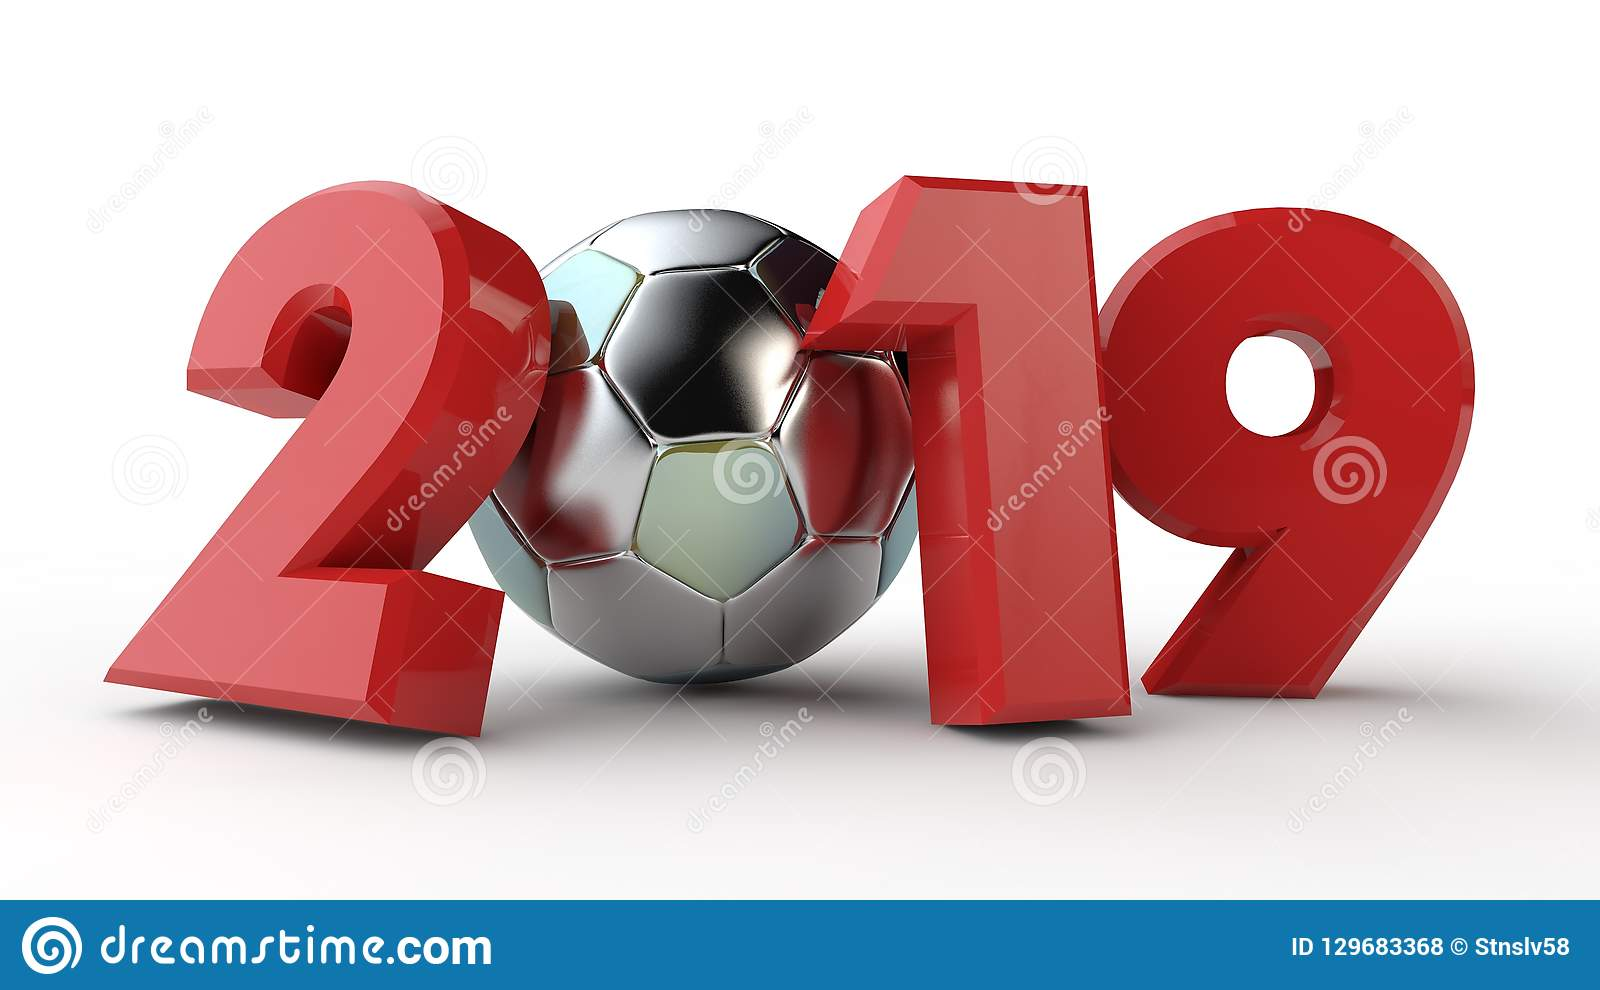 2019 Soccer Calendar 3D Illustration Of 2019 Date, With A Soccer Ball. The Idea For The